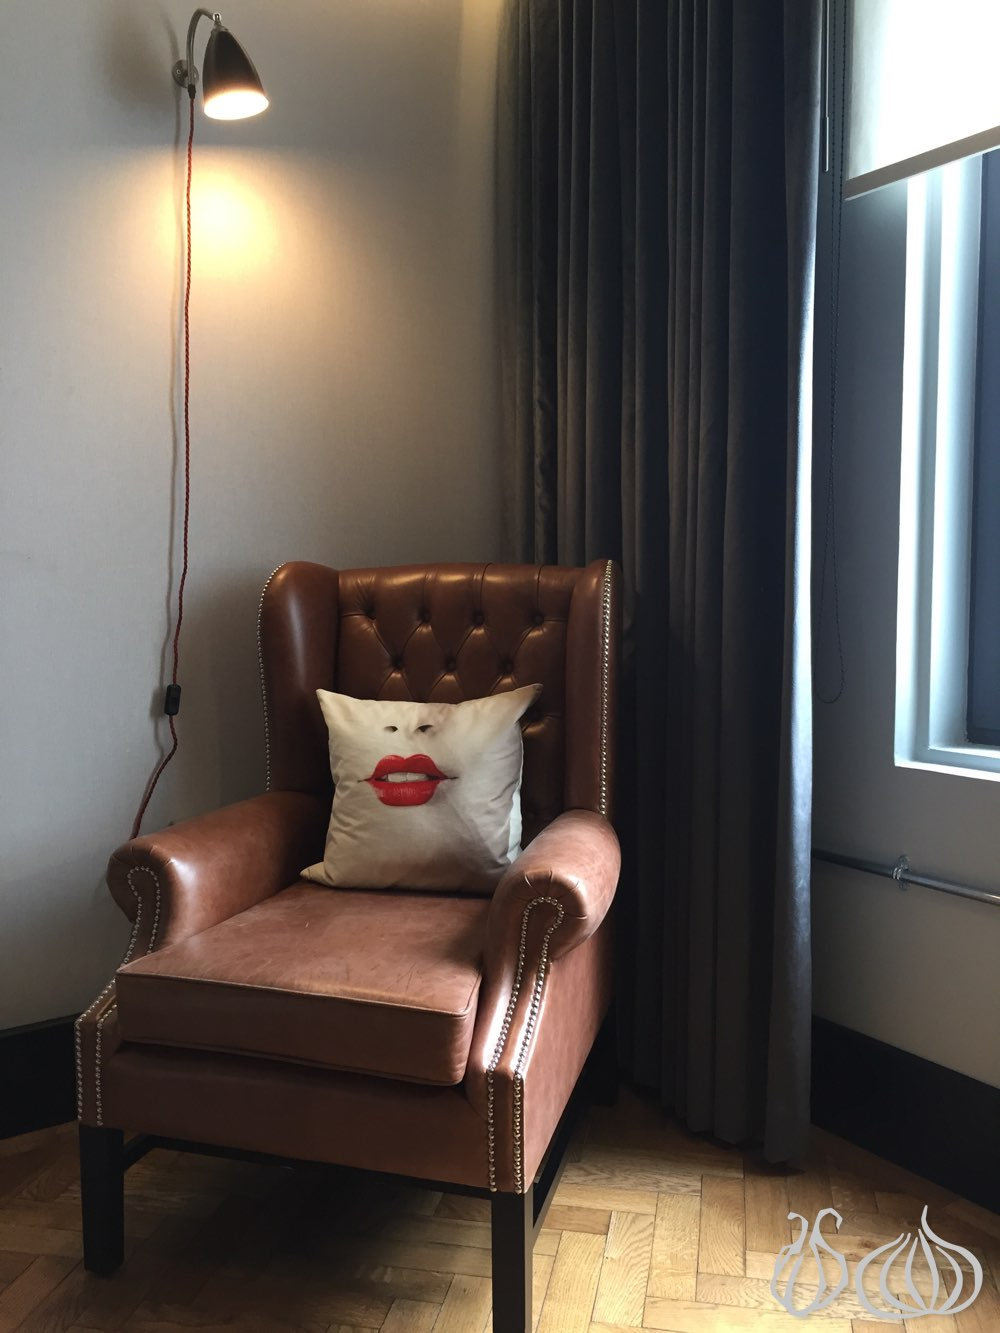 the-hoxton-hotel-london62015-06-09-10-27-41